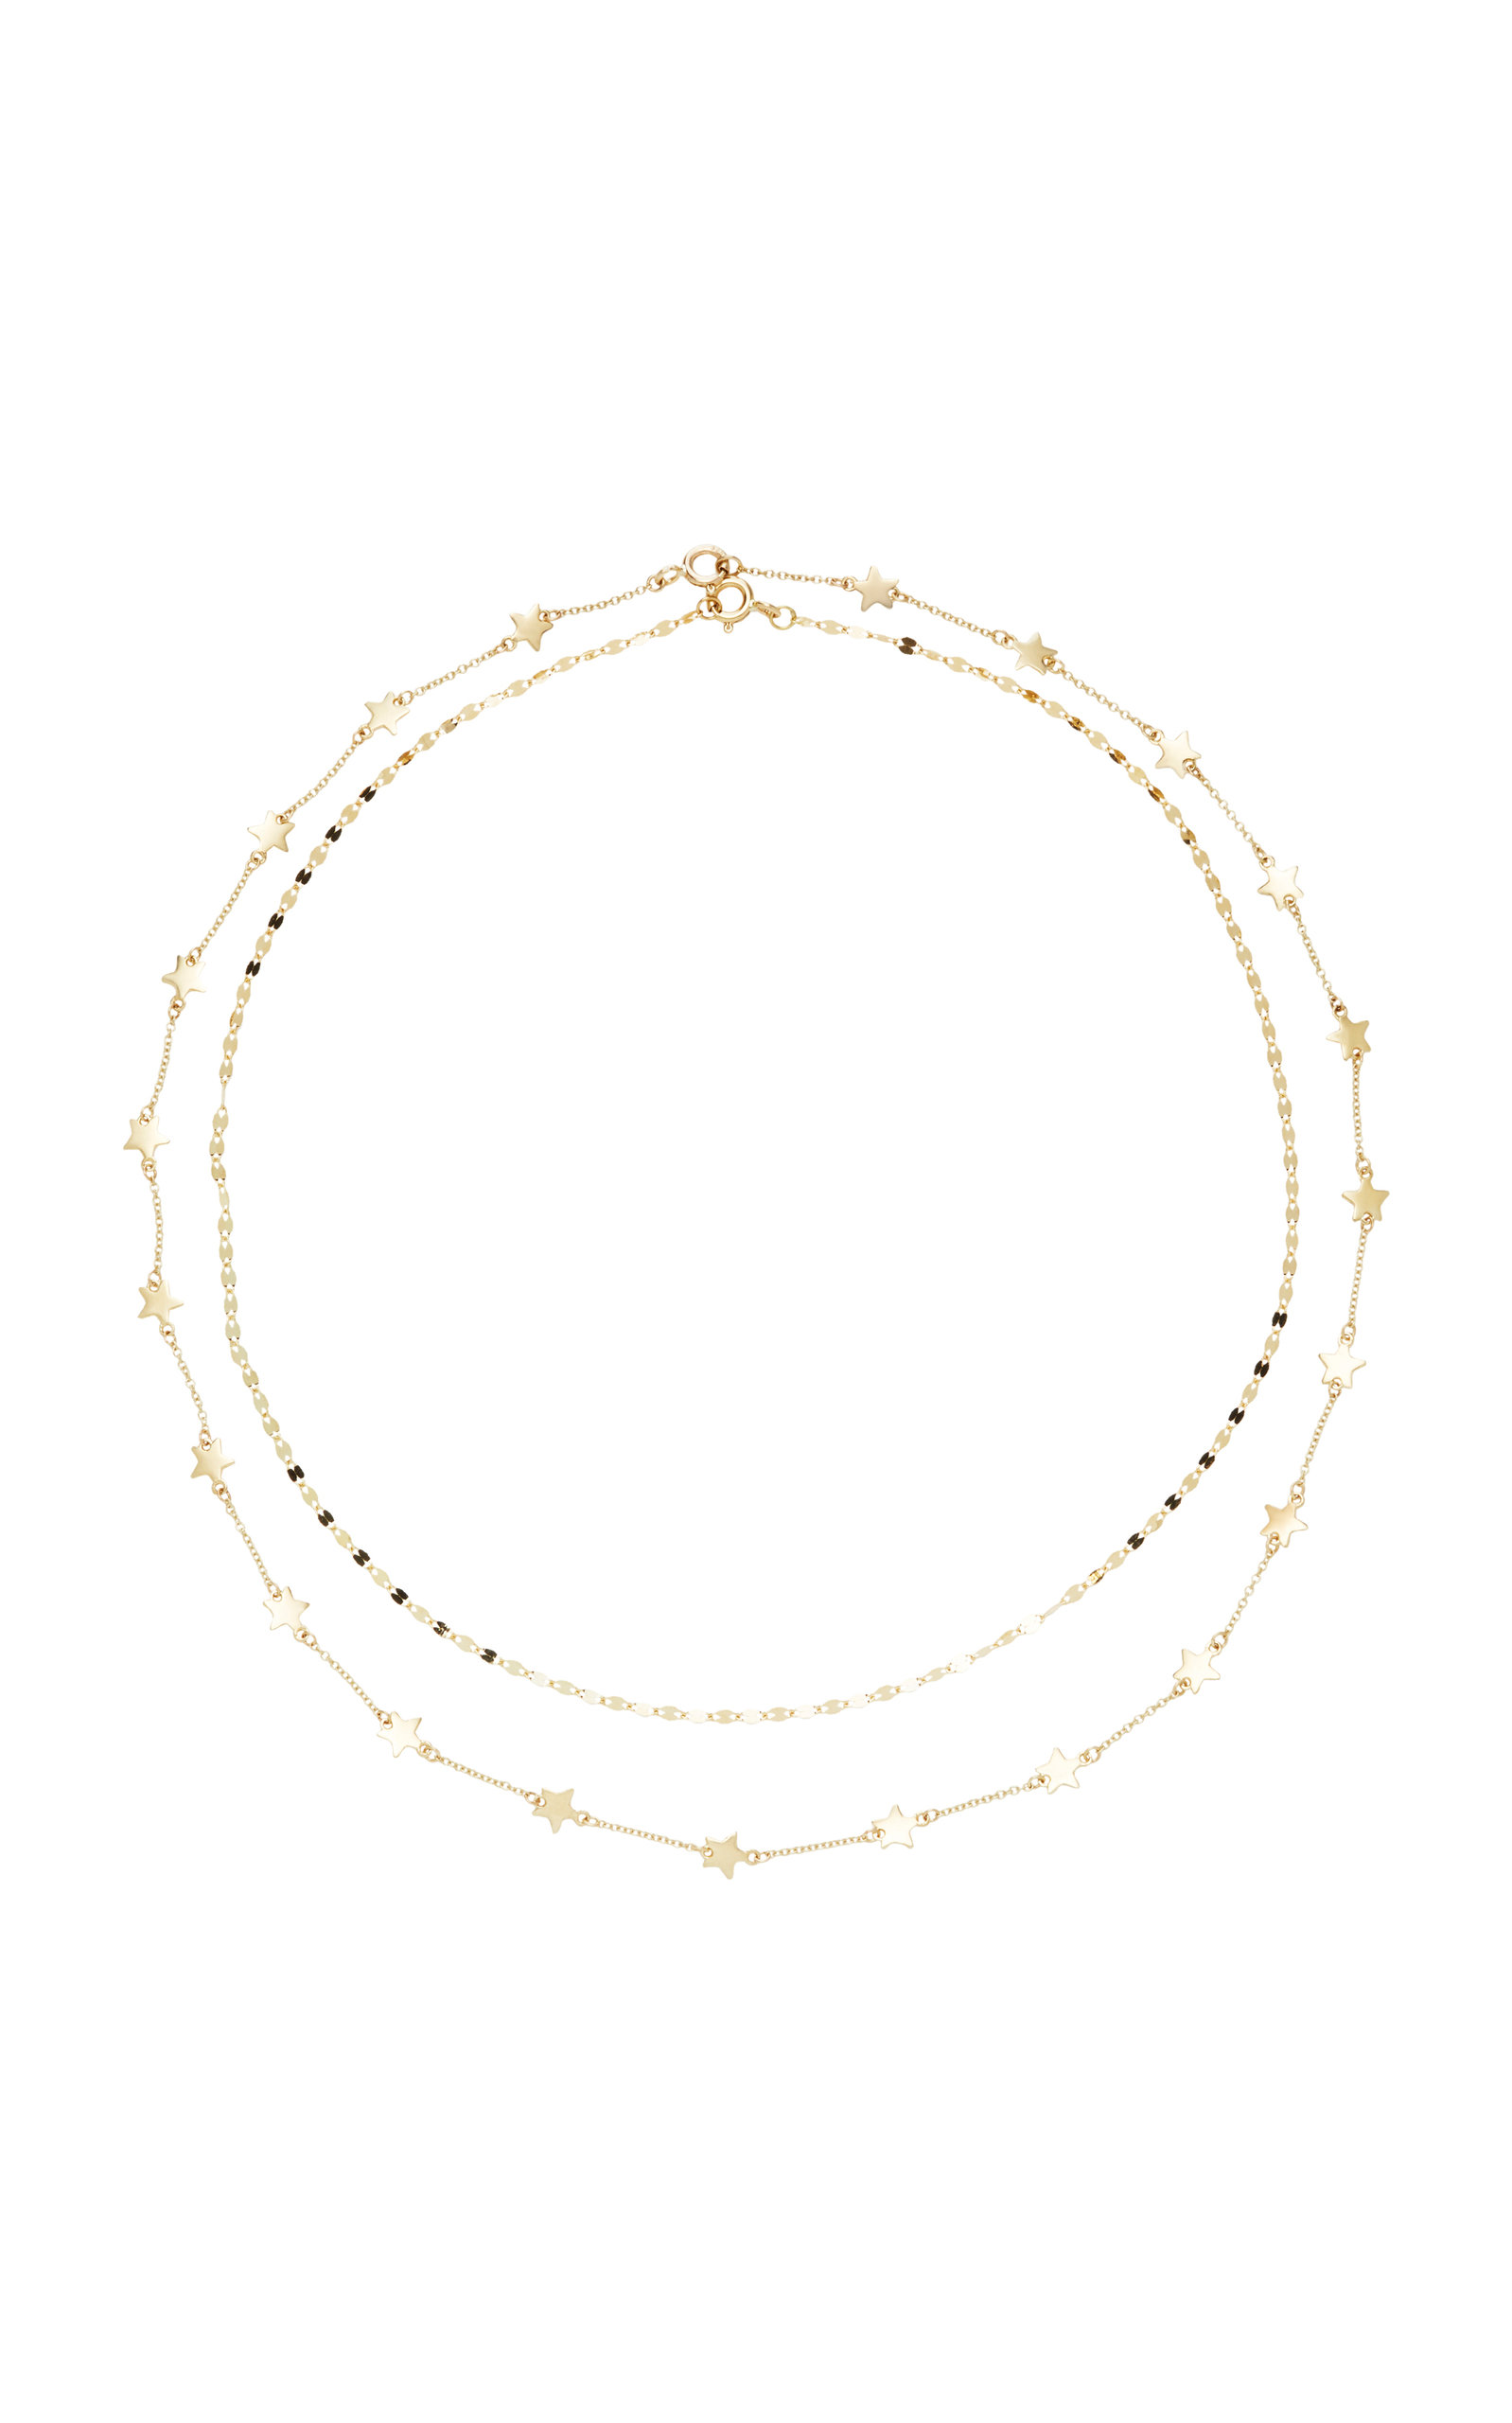 LIL MILAN SET-OF-TWO BOYS TEARS AND STARRY NIGHT 9K GOLD NECKLACES